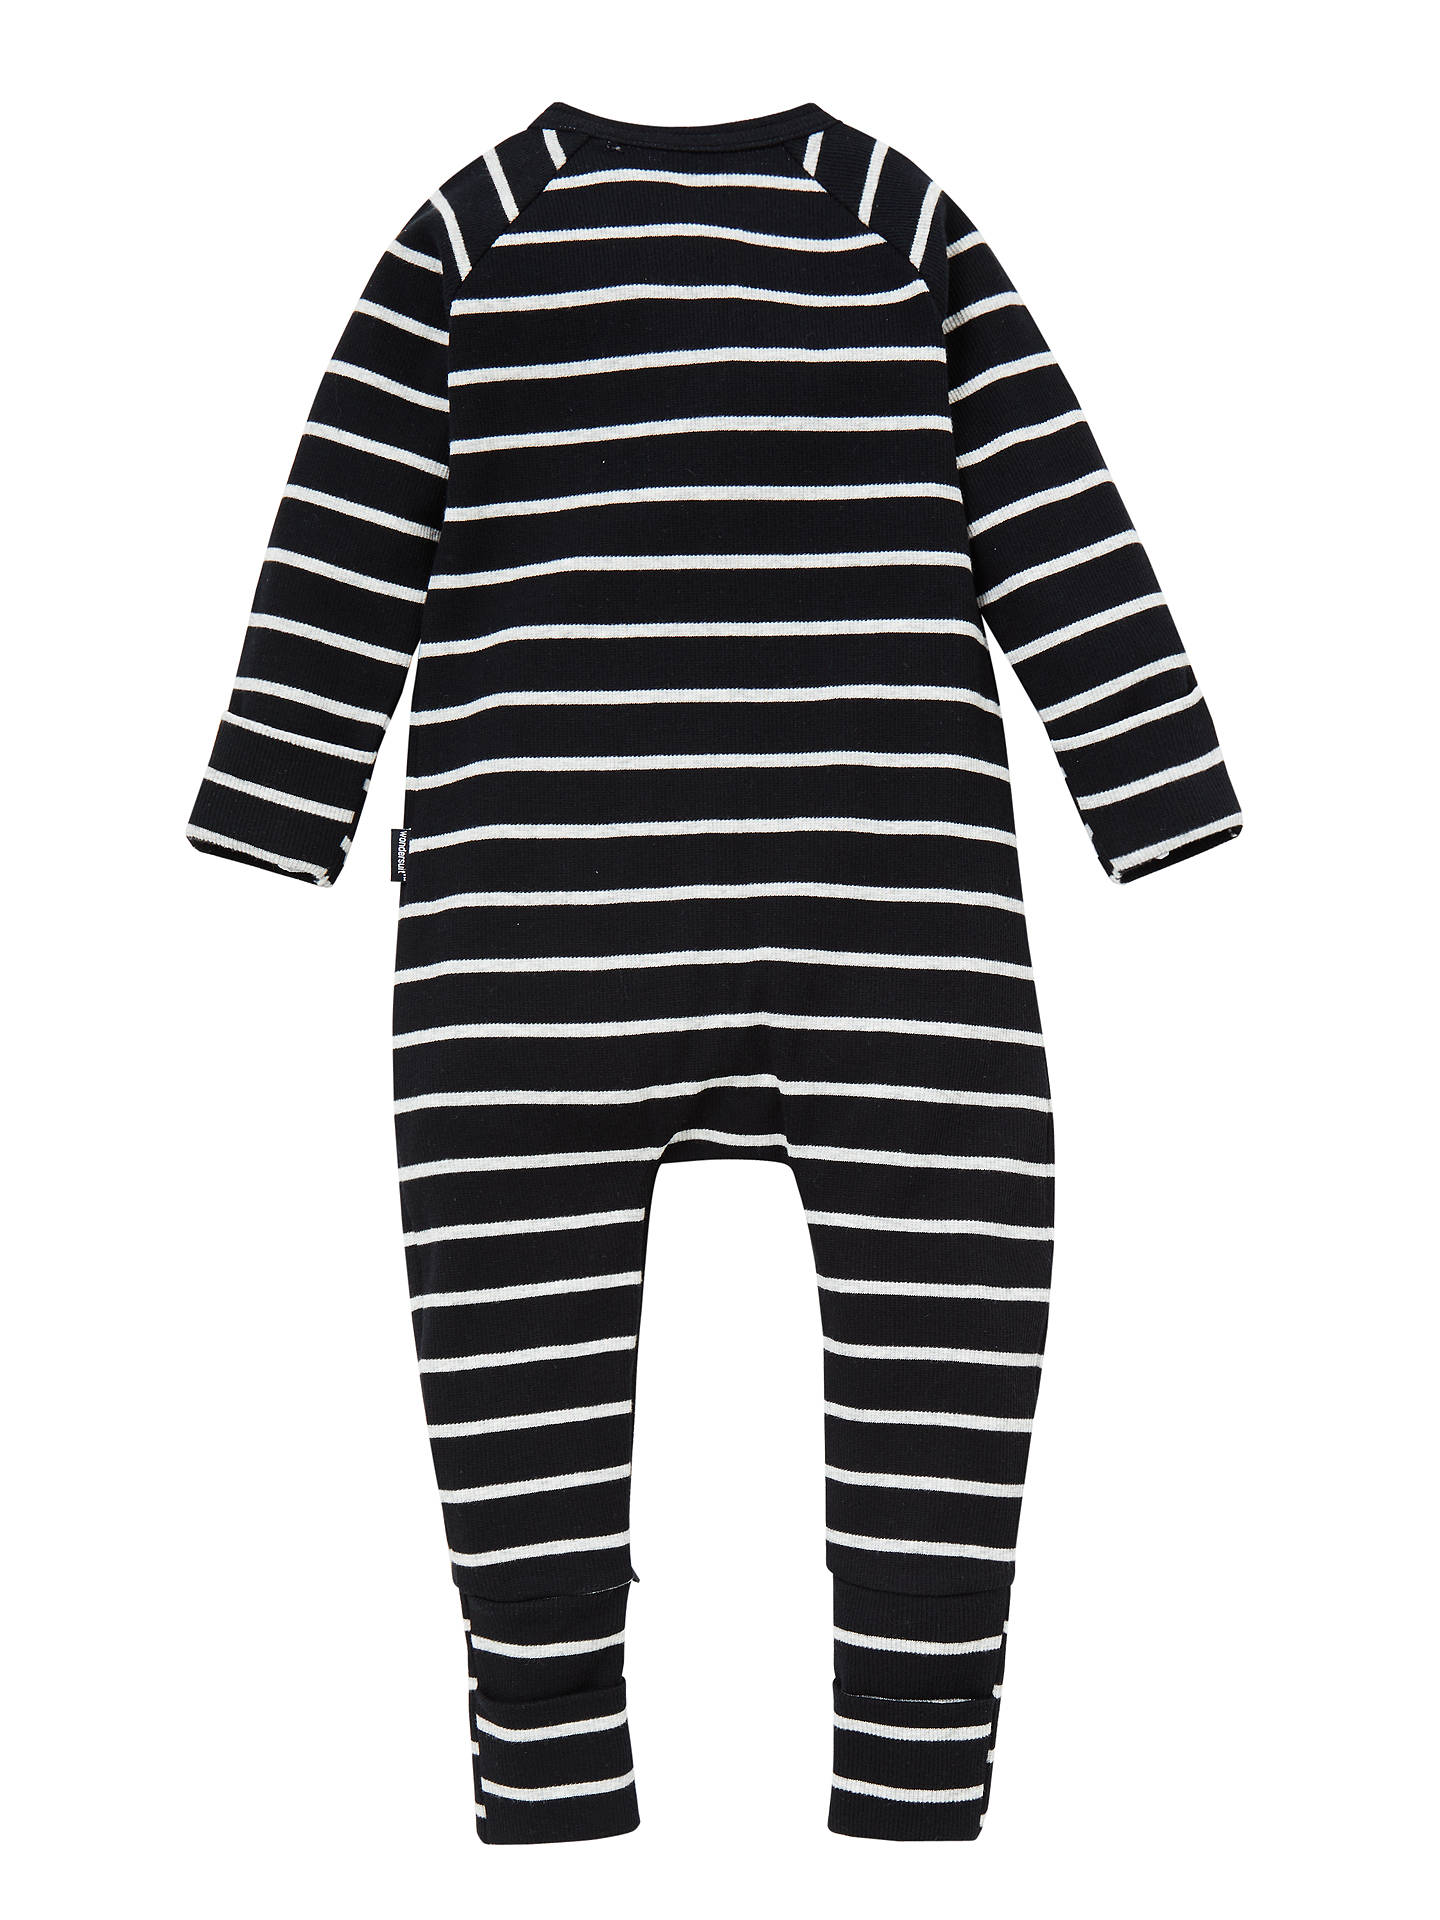 BuyBonds Baby Zippy Marble Stripe Wondersuit, Multi, Newborn Online at johnlewis.com